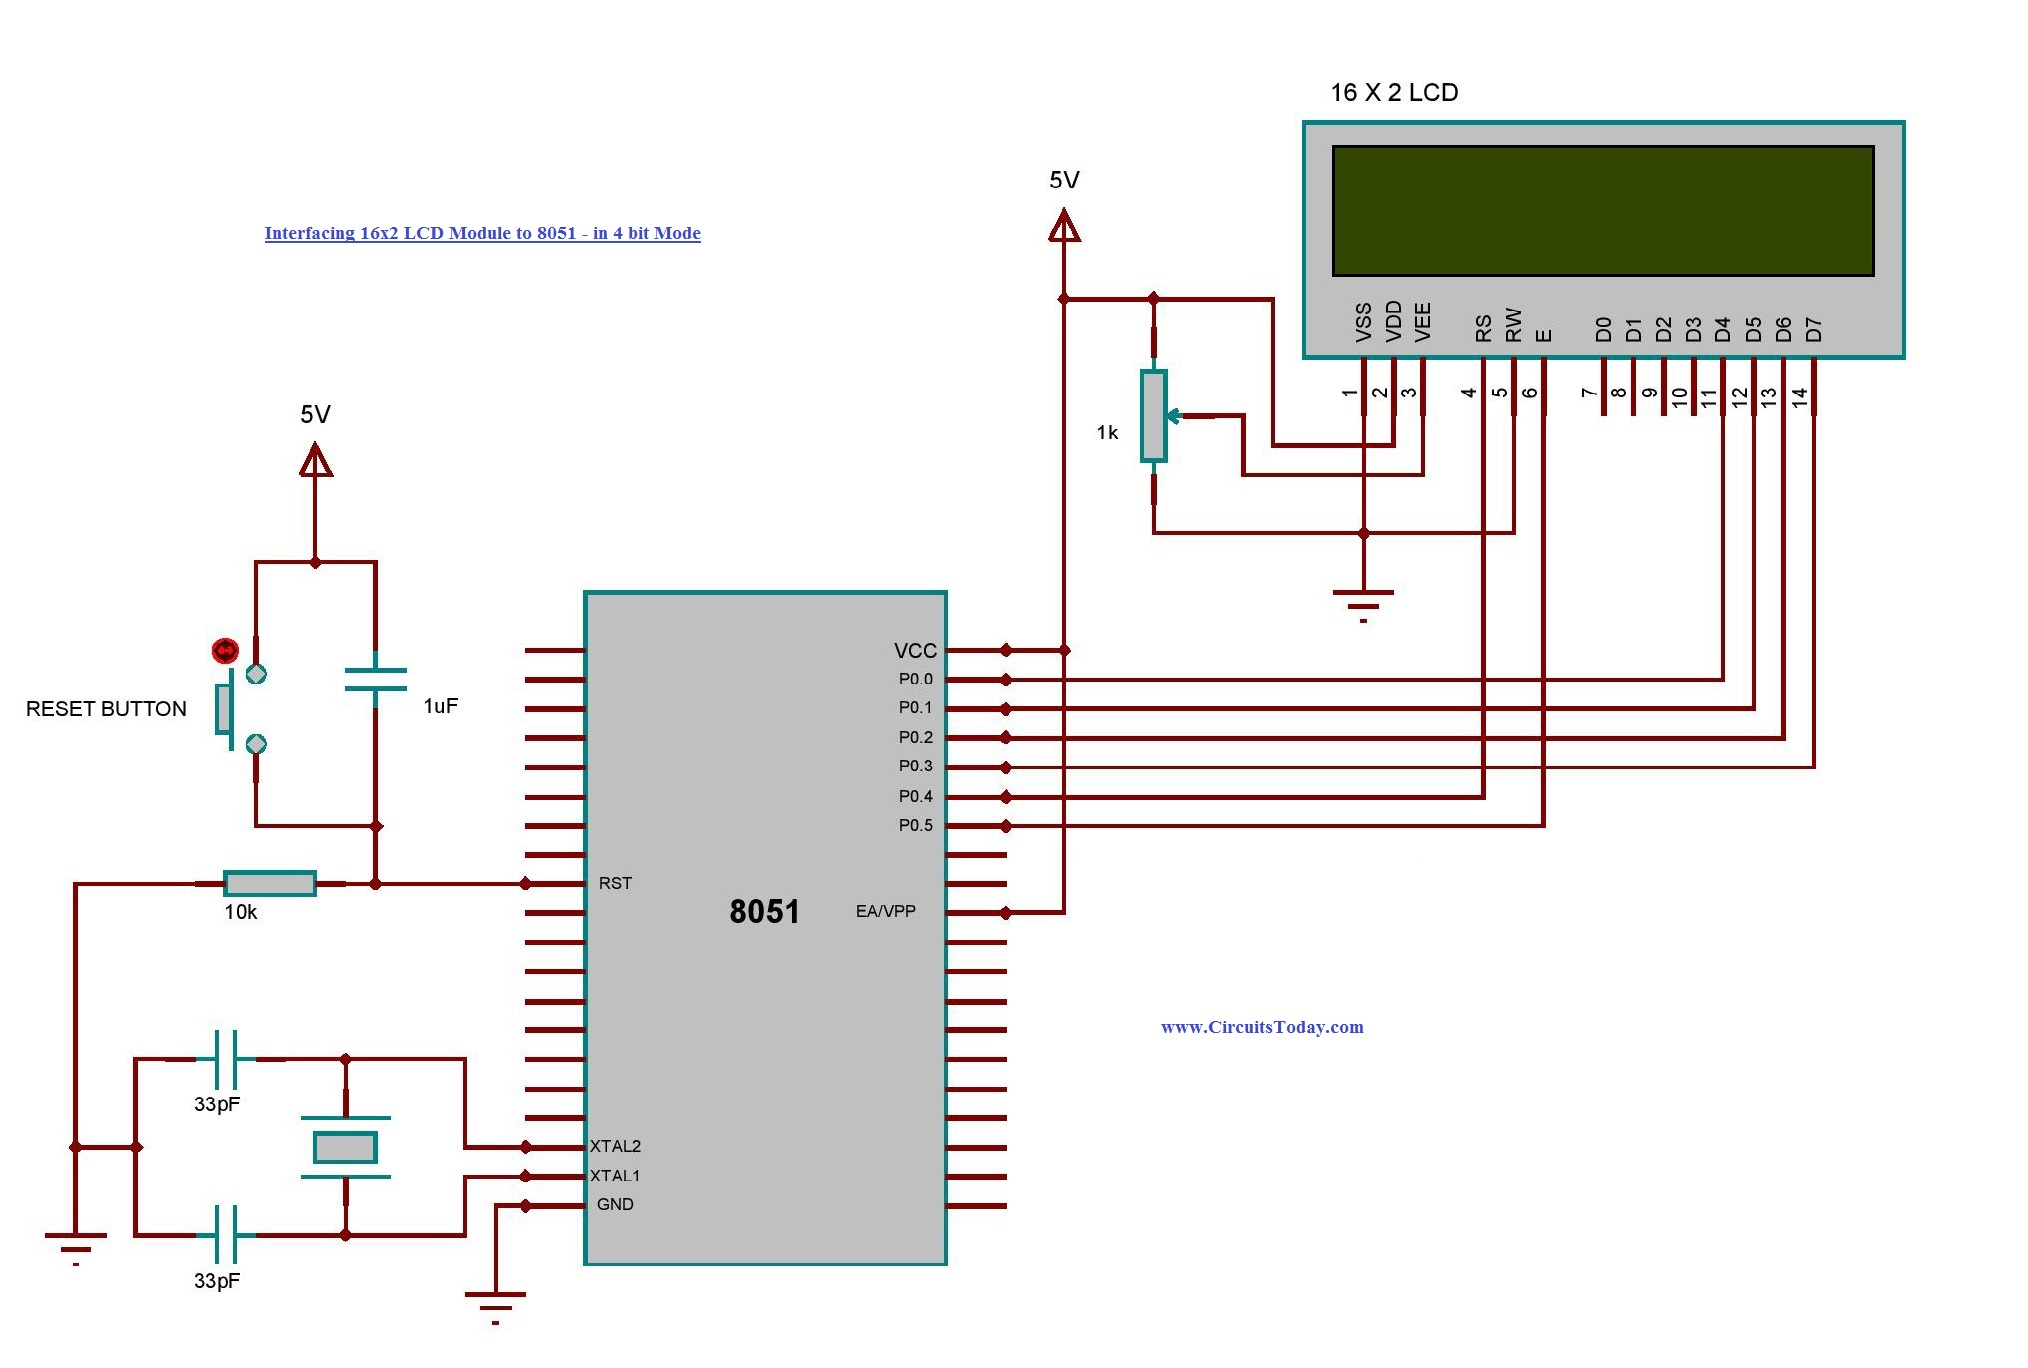 Interfacing 16x2 Lcd With 8051 Microcontroller Module Theory Make A Block Diagram In Word To 4 Bit Mode